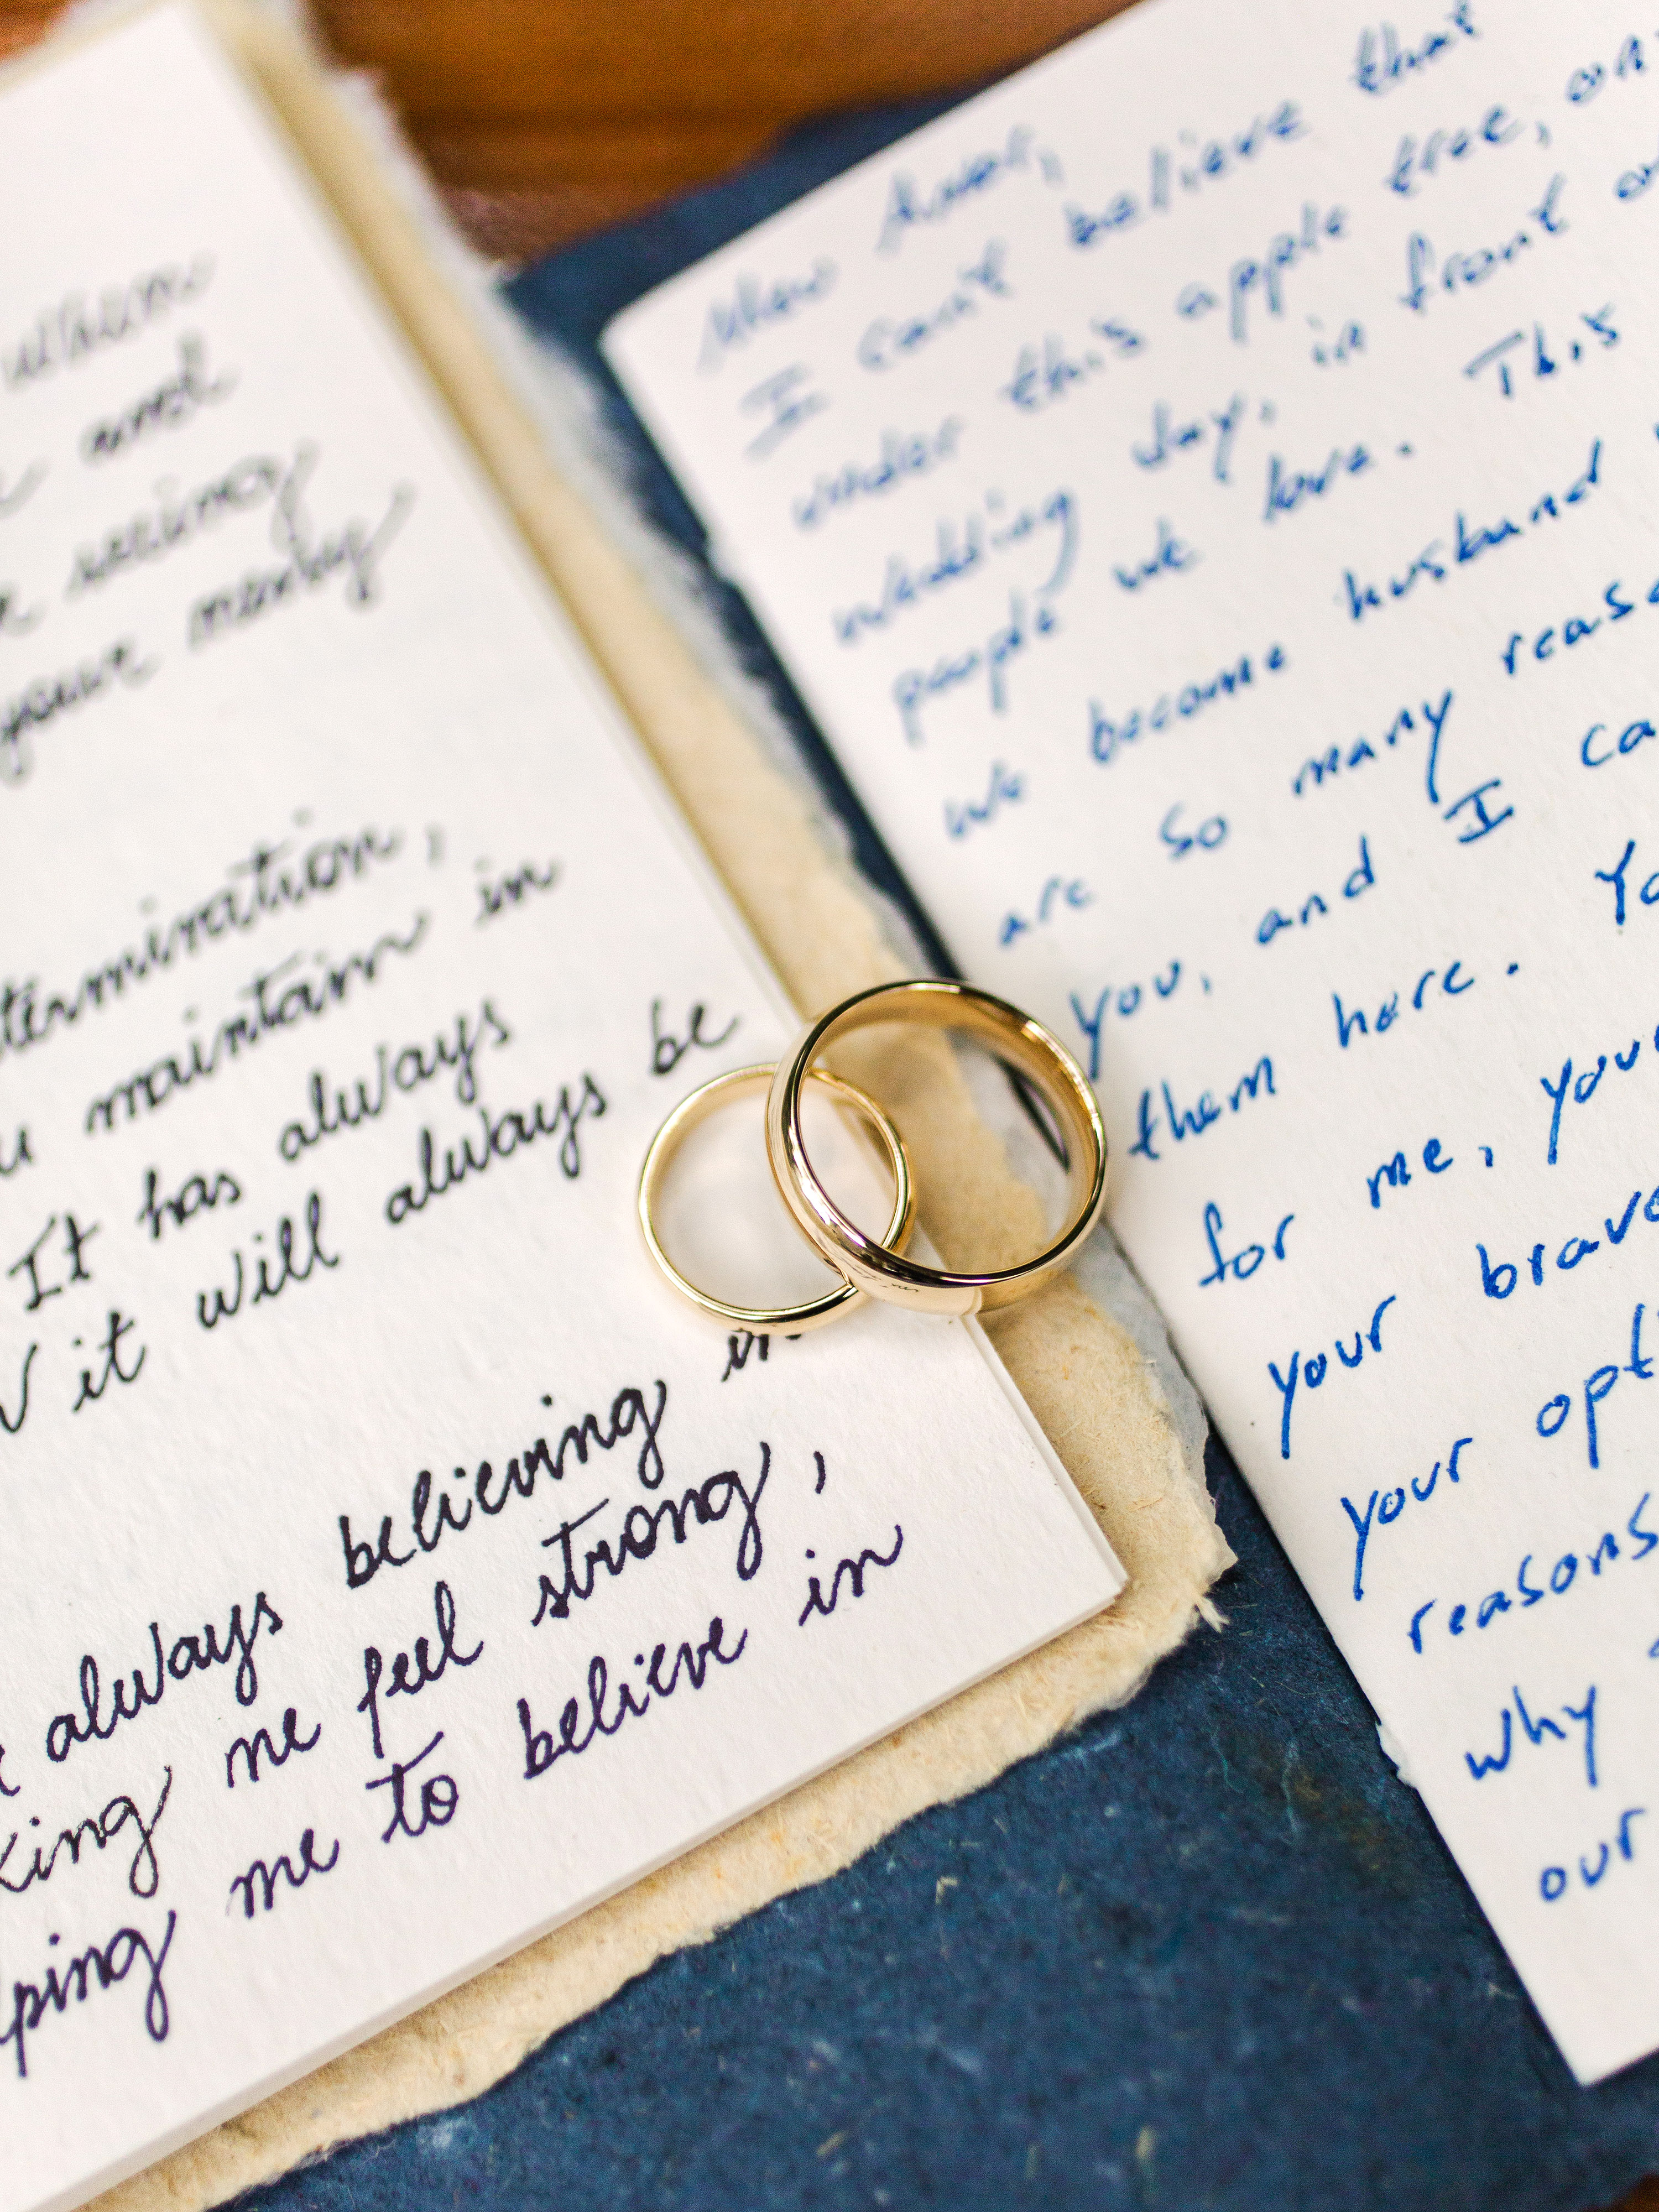 dayane collin wedding rings and vows